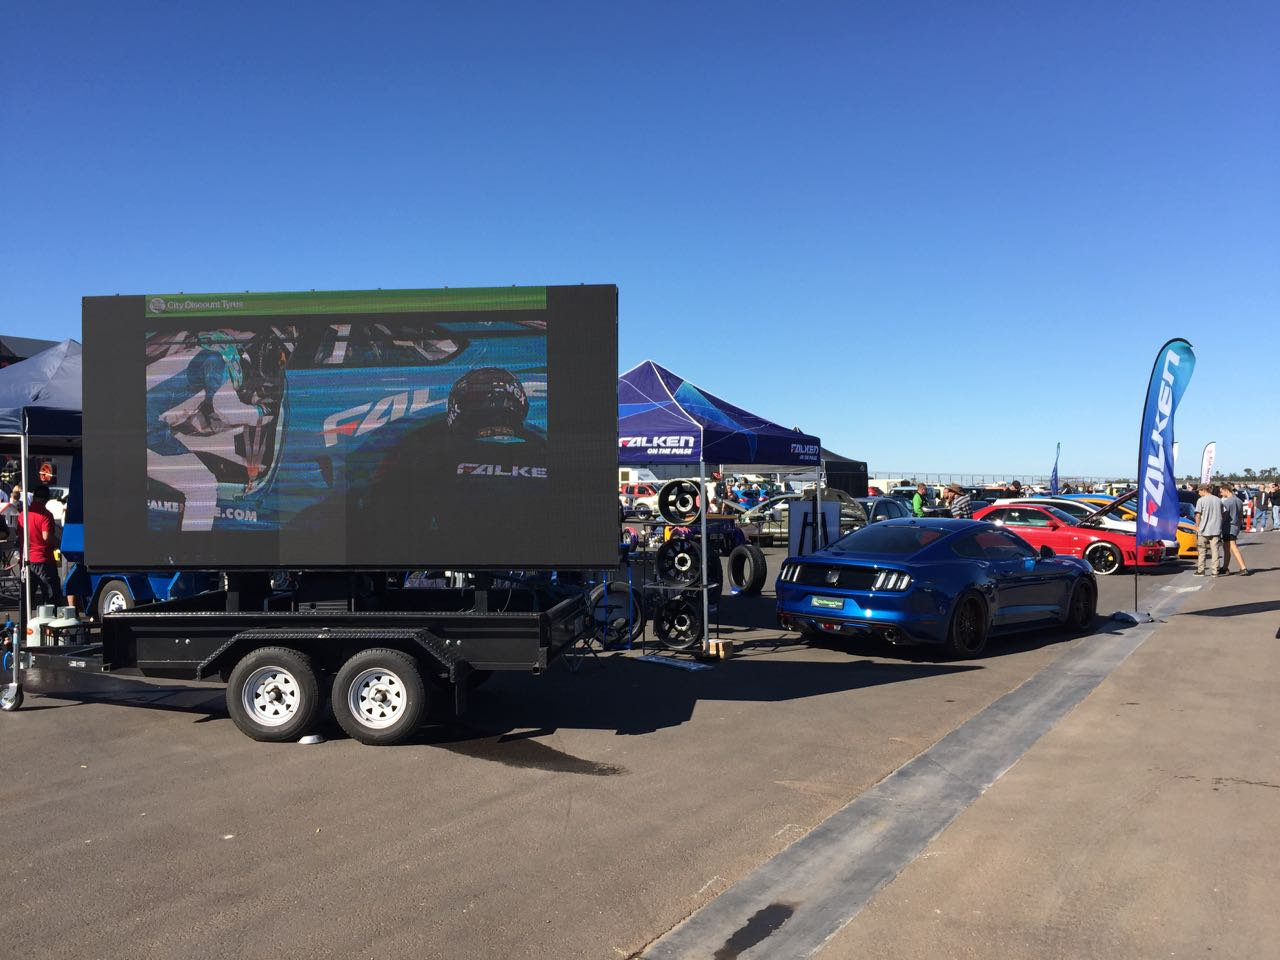 Big Vision Screen's LED screen mounted on our mobile trailer for City Discount Tyres' display at The Bend Motorsport Park in Tailem Bend (SA)